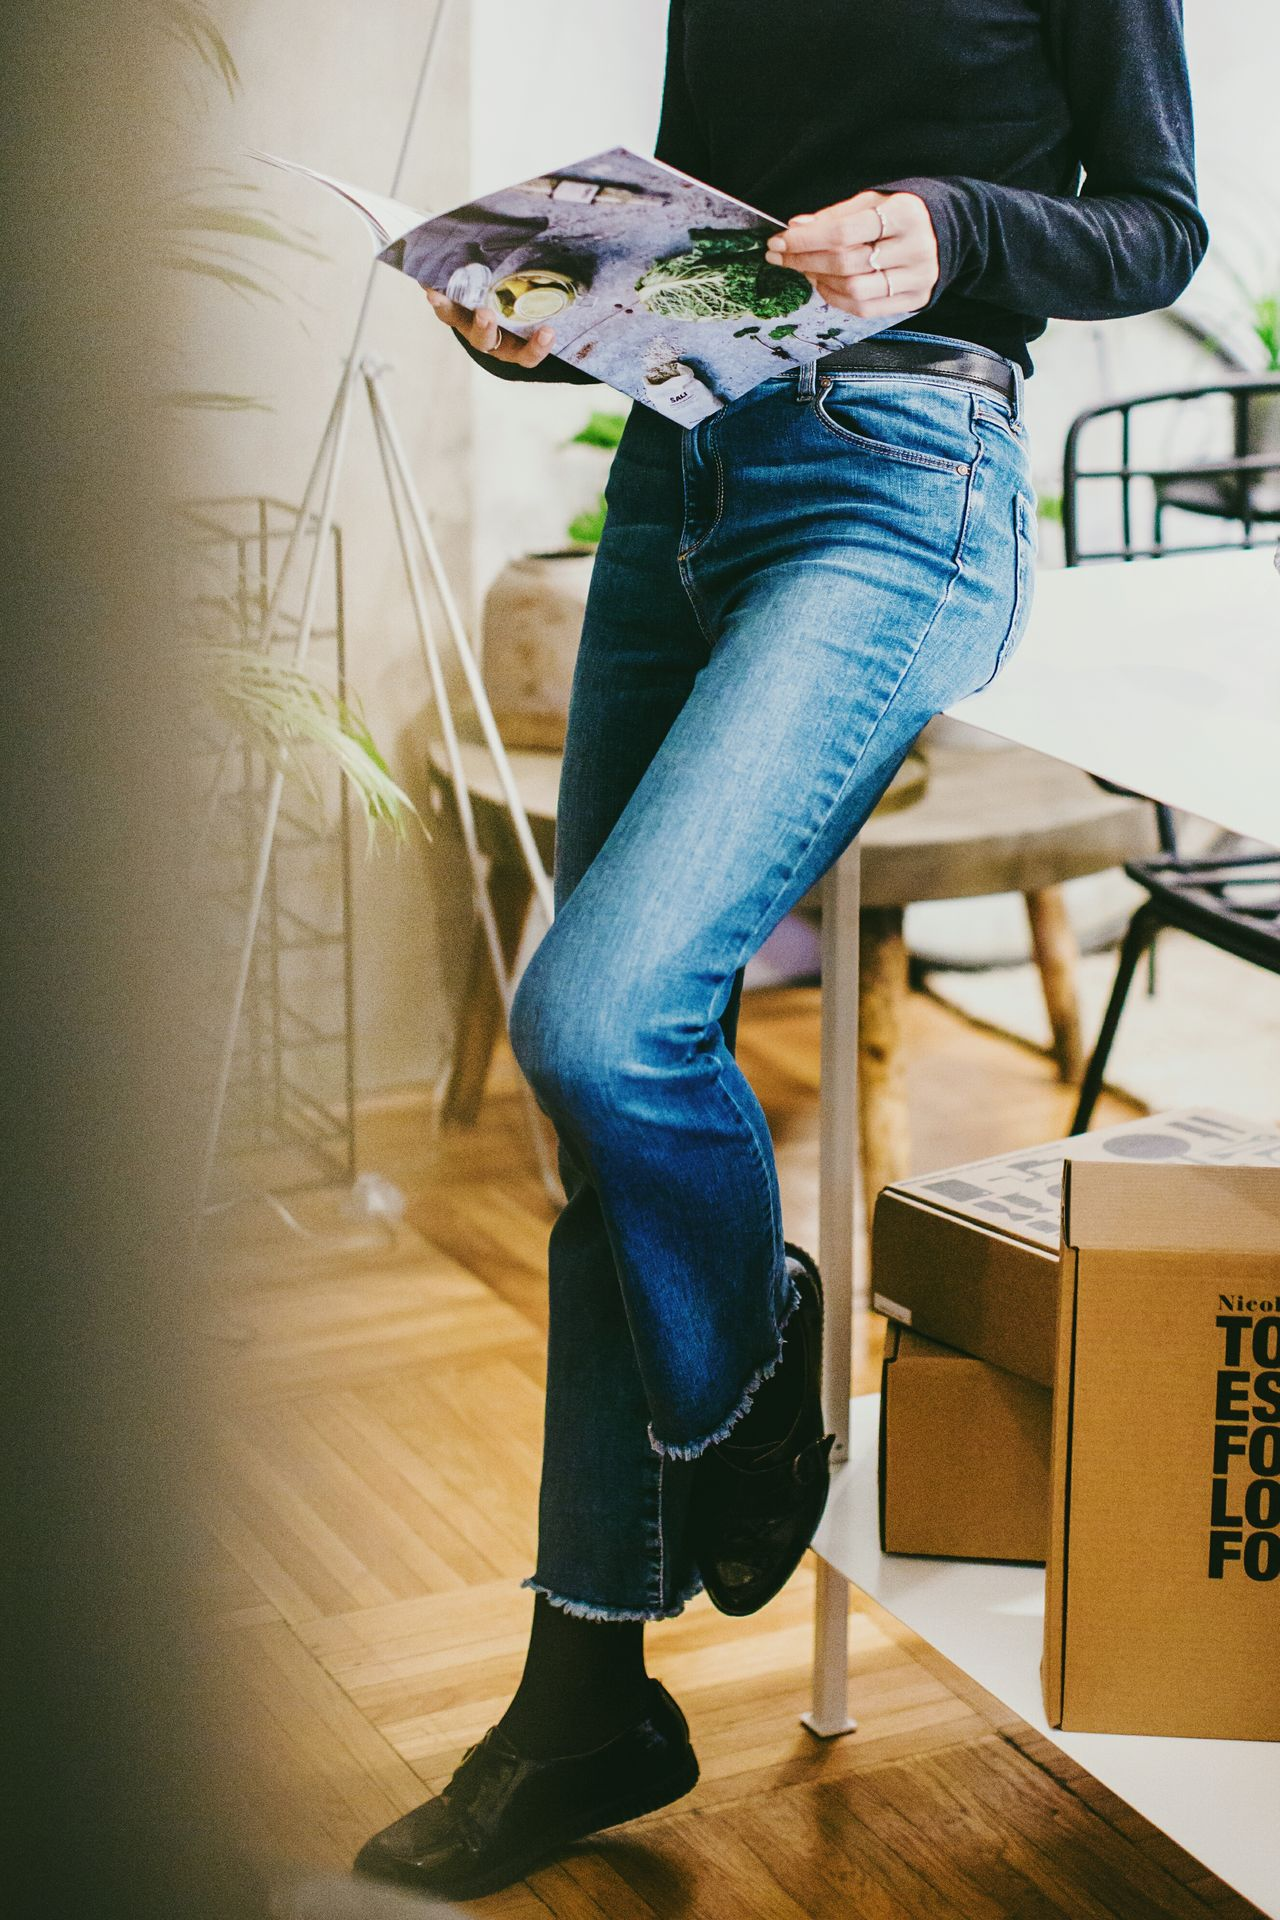 Fashion Human Leg Jeans Casual Clothing Sitting One Person Denim Fashion Indoors  People Young Women Shoe Women Human Body Part Fashion Photography Interiordesign Fashion&love&beauty Indoors  Fashionblogger City Urban Bucharest